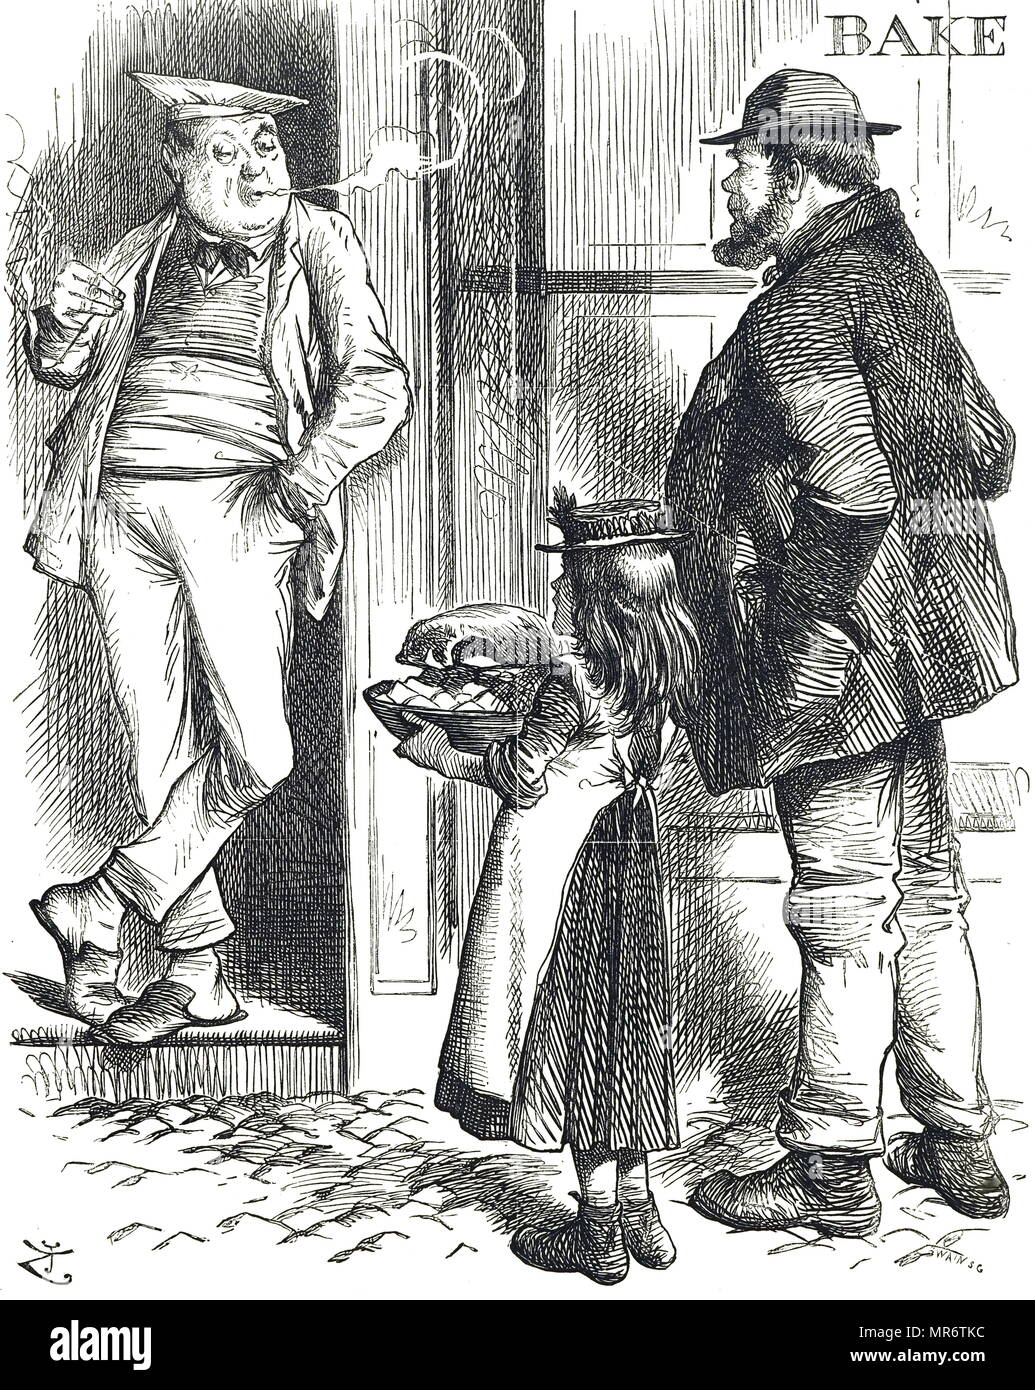 Cartoon commenting on the restricted cooking facilities in poor homes were there was often no oven. Food for roasting was often taken to the local baker who would put it in his oven after the bread was baked. Illustrated by John Tenniel (1820-1914) an English illustrator, graphic humourist, and political cartoonist. Dated 19th century - Stock Image